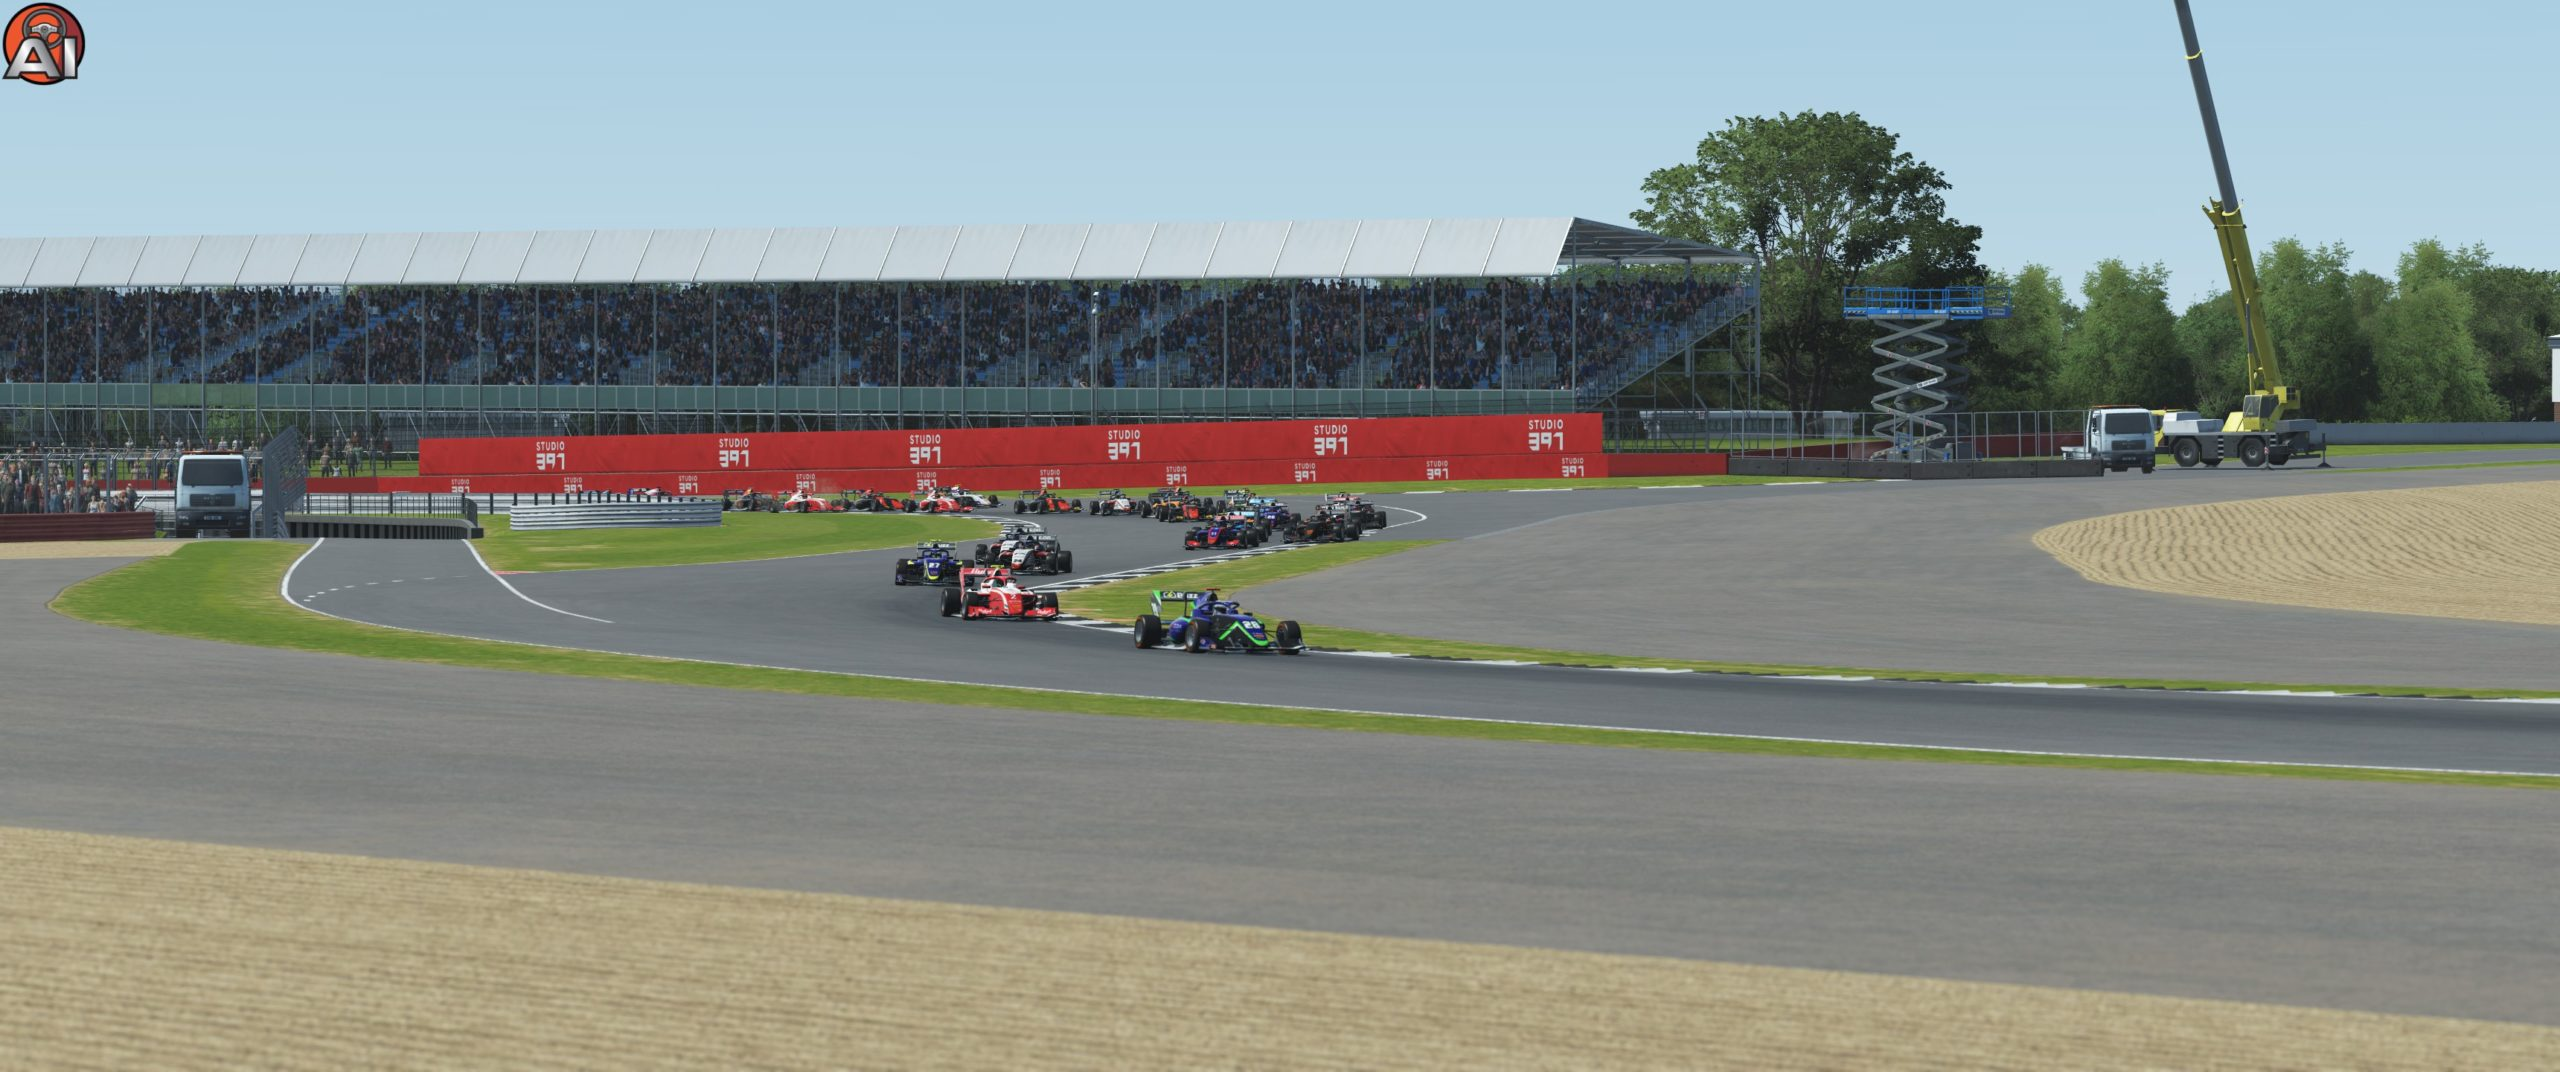 20200629155541_1-scaled SMMG Formula 3 2020 1.0 for rFactor 2 – Released